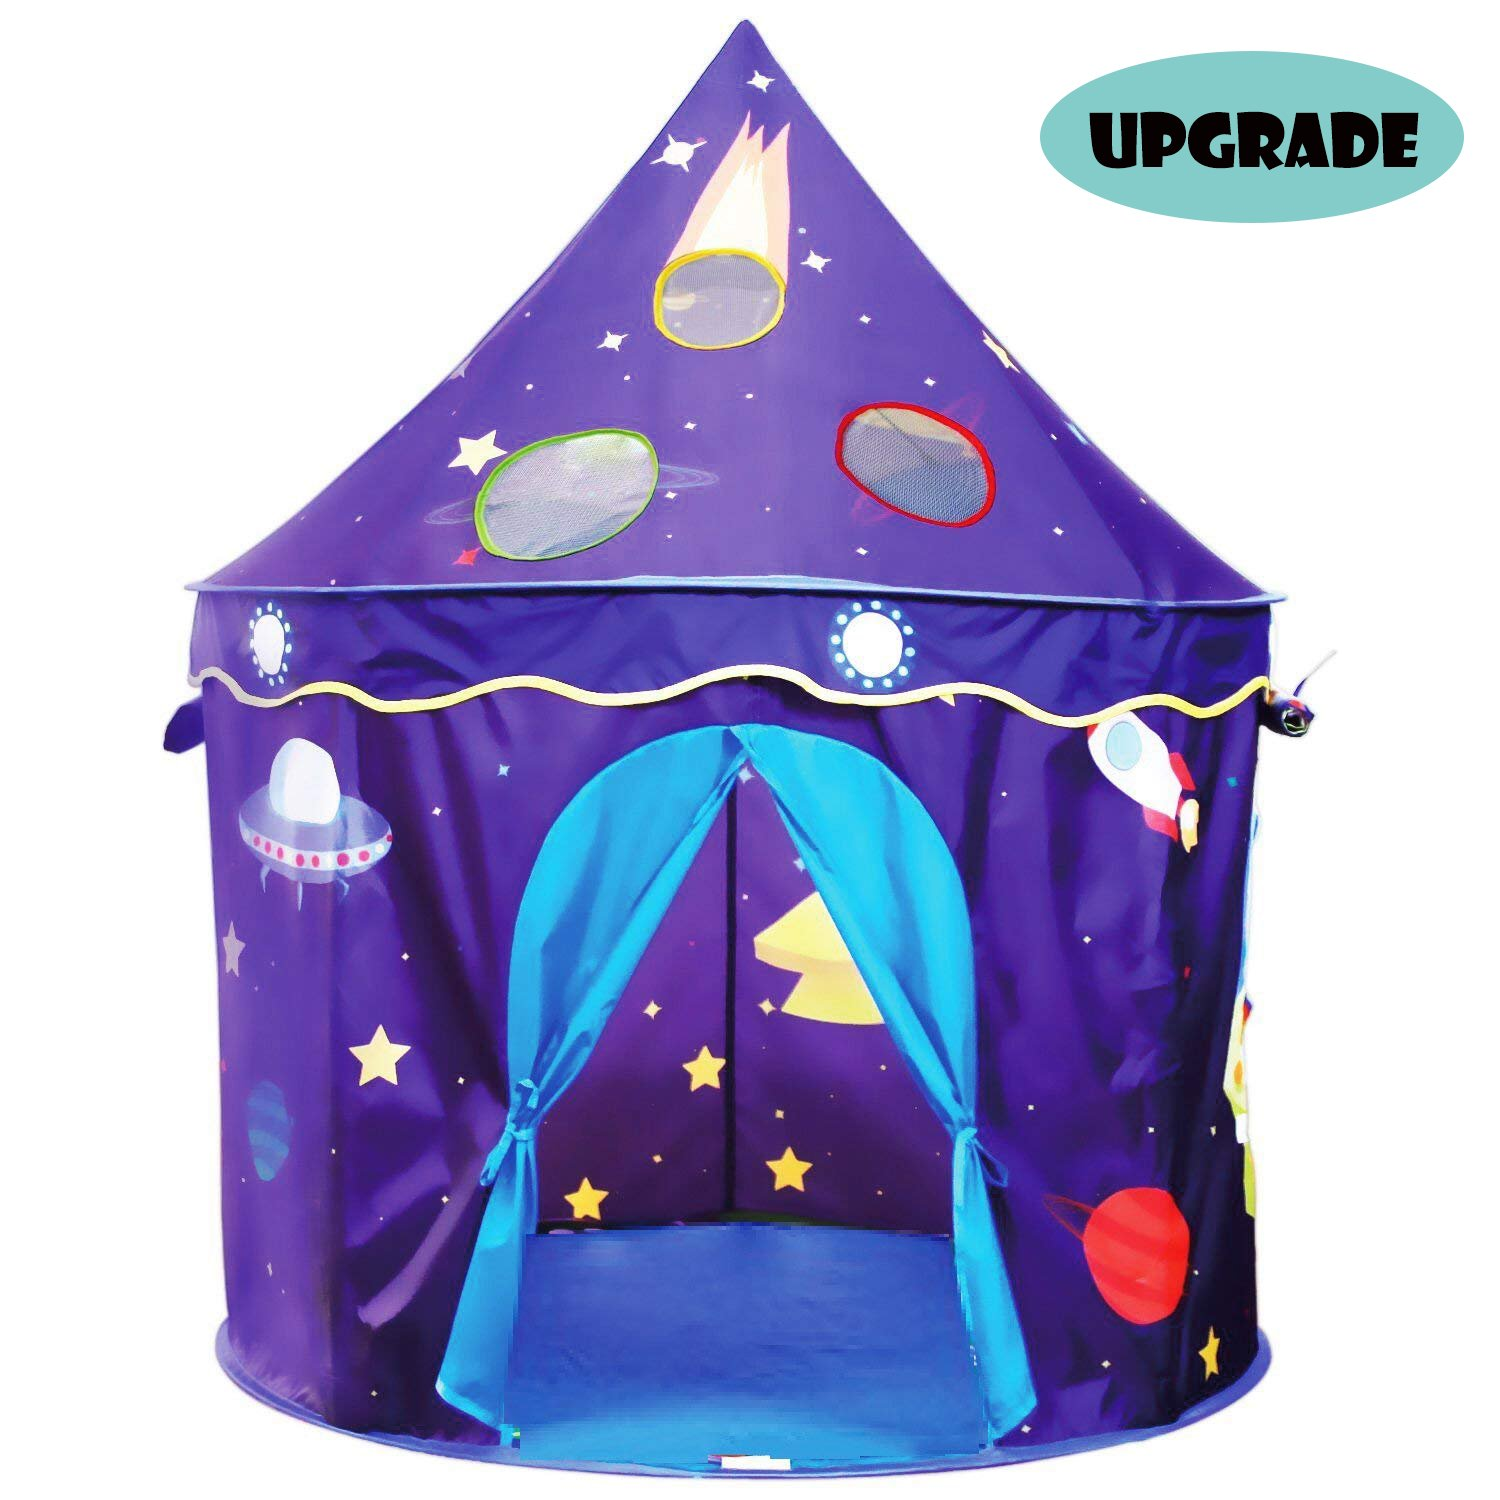 Eggsnow Kids Play Tent Castle Play Tent for Boys and Girls,Folding Toddler Tent for Indoor and Outdoor Fun Plays-Upgraded Topbestsource FBA-WZZP-TKCB